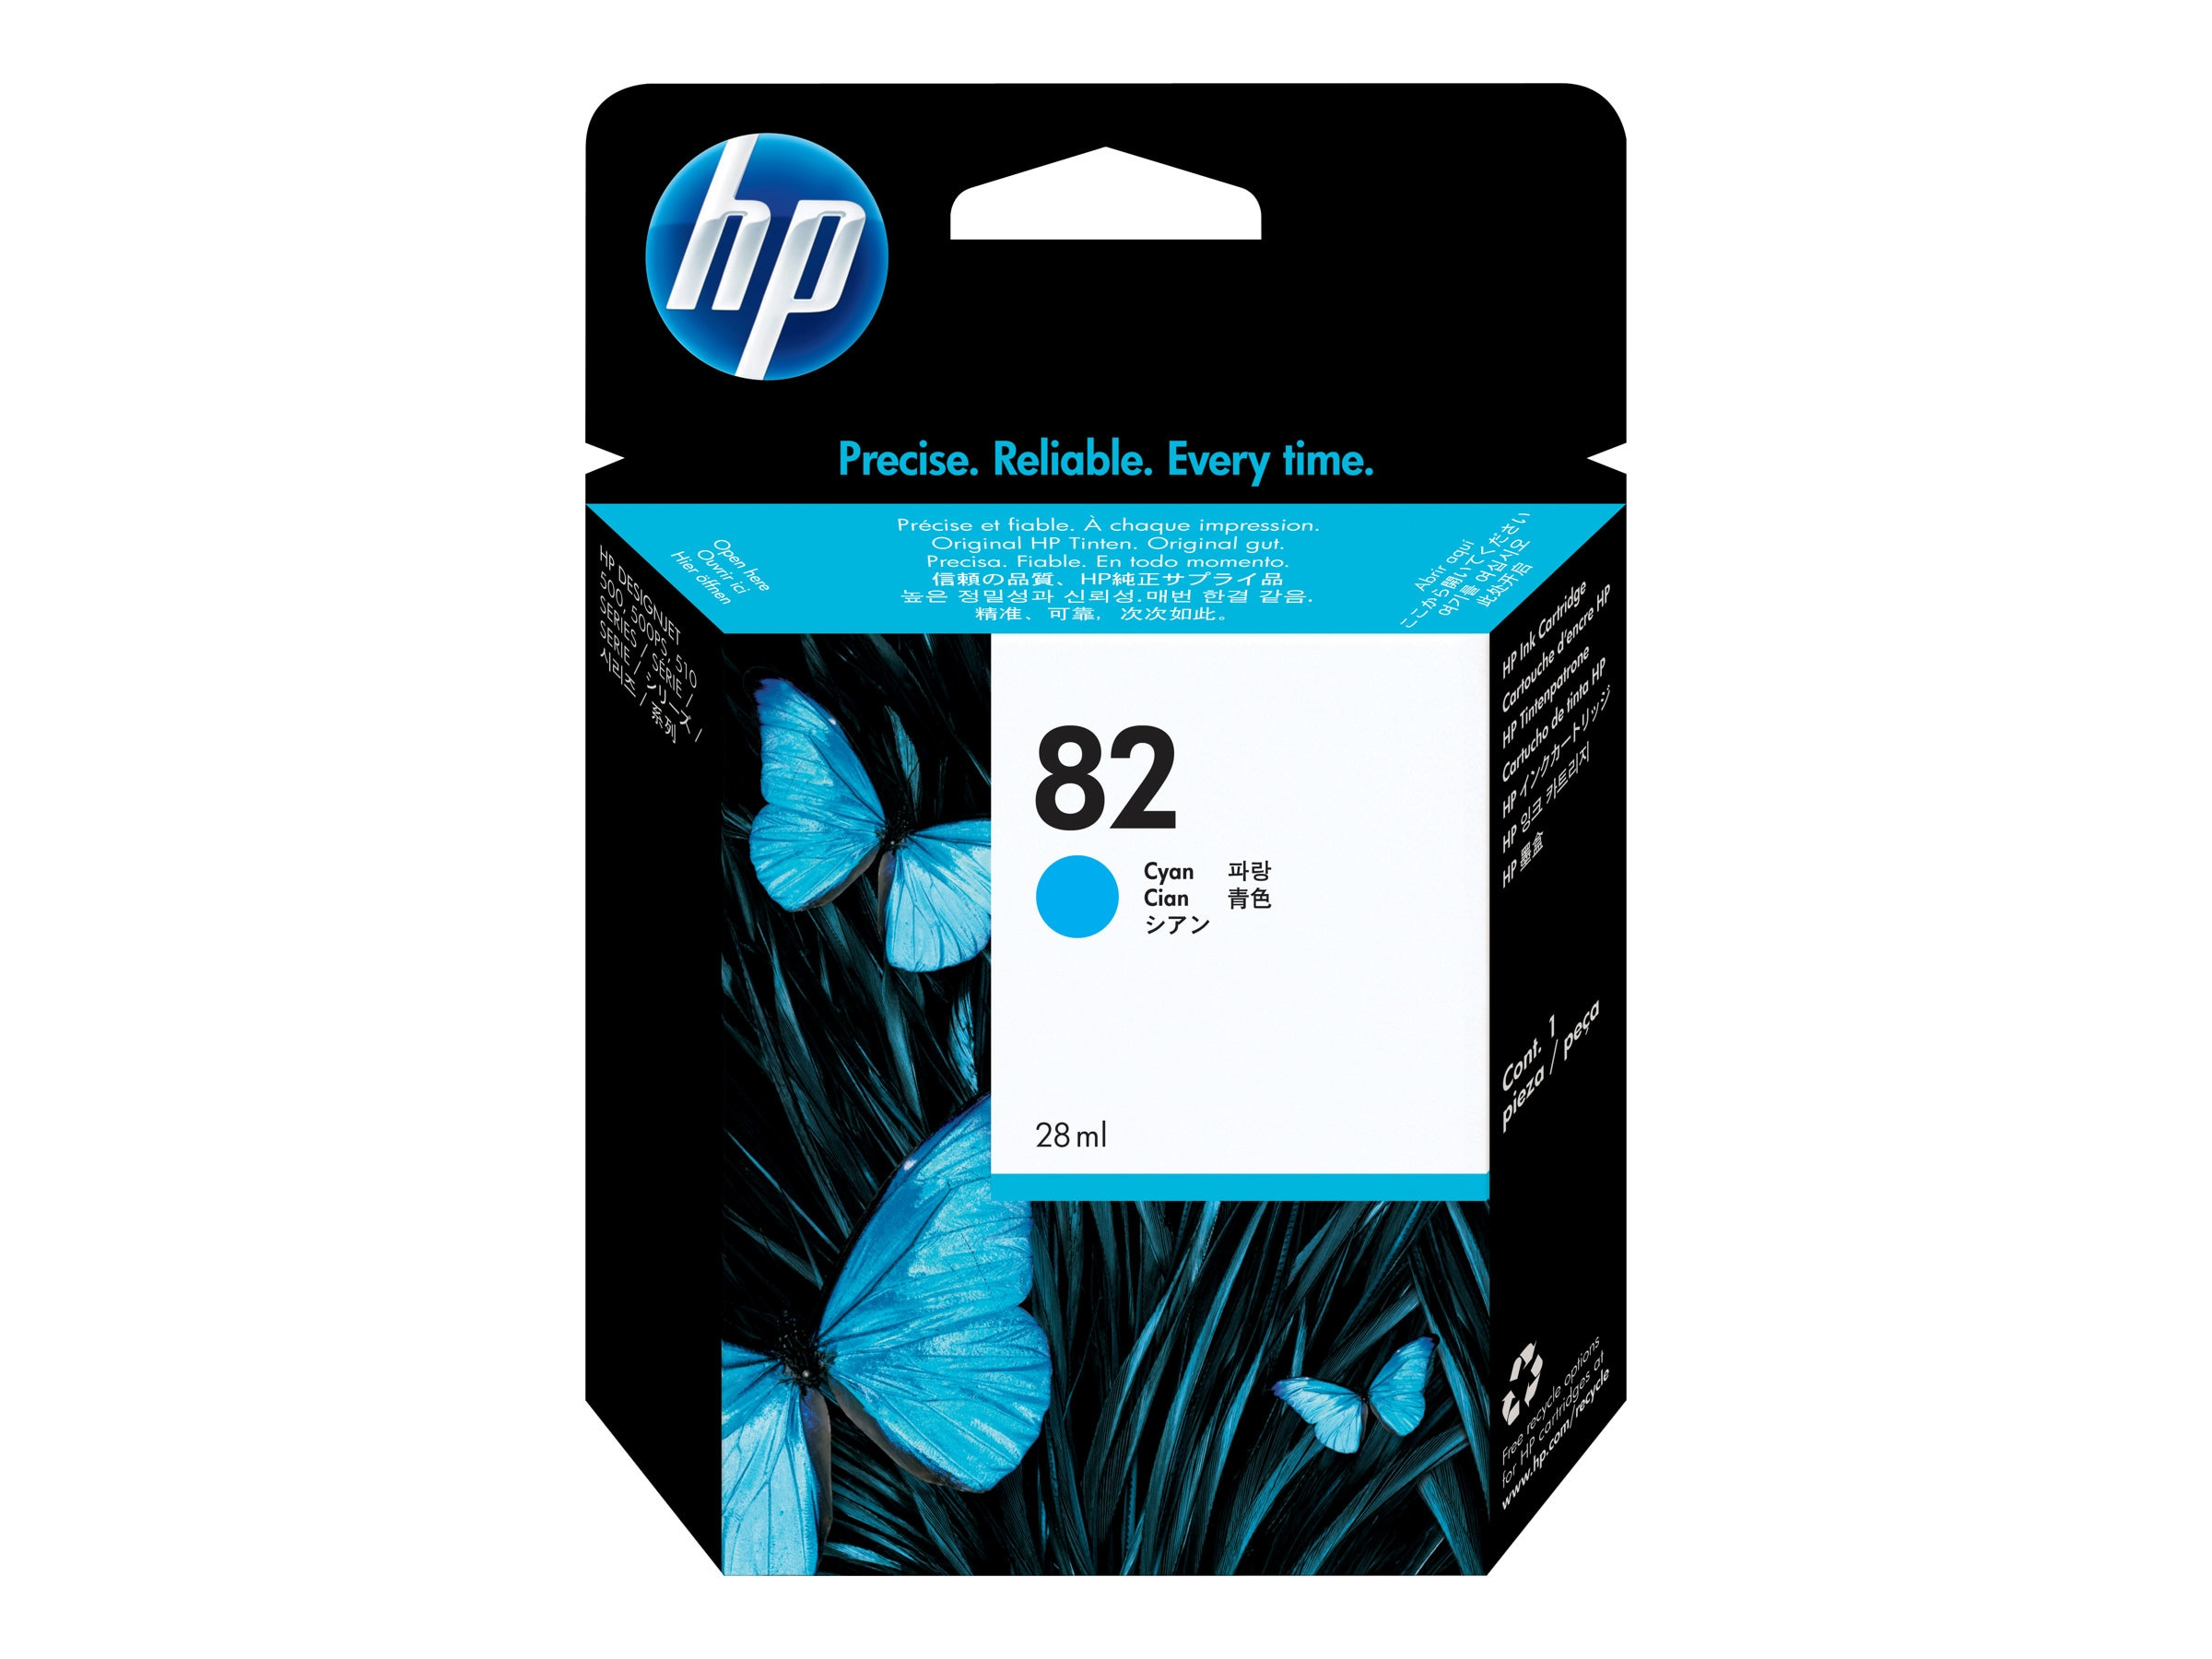 HP 82 Cyan Ink Cartridge for Designjet Printers, CH566A